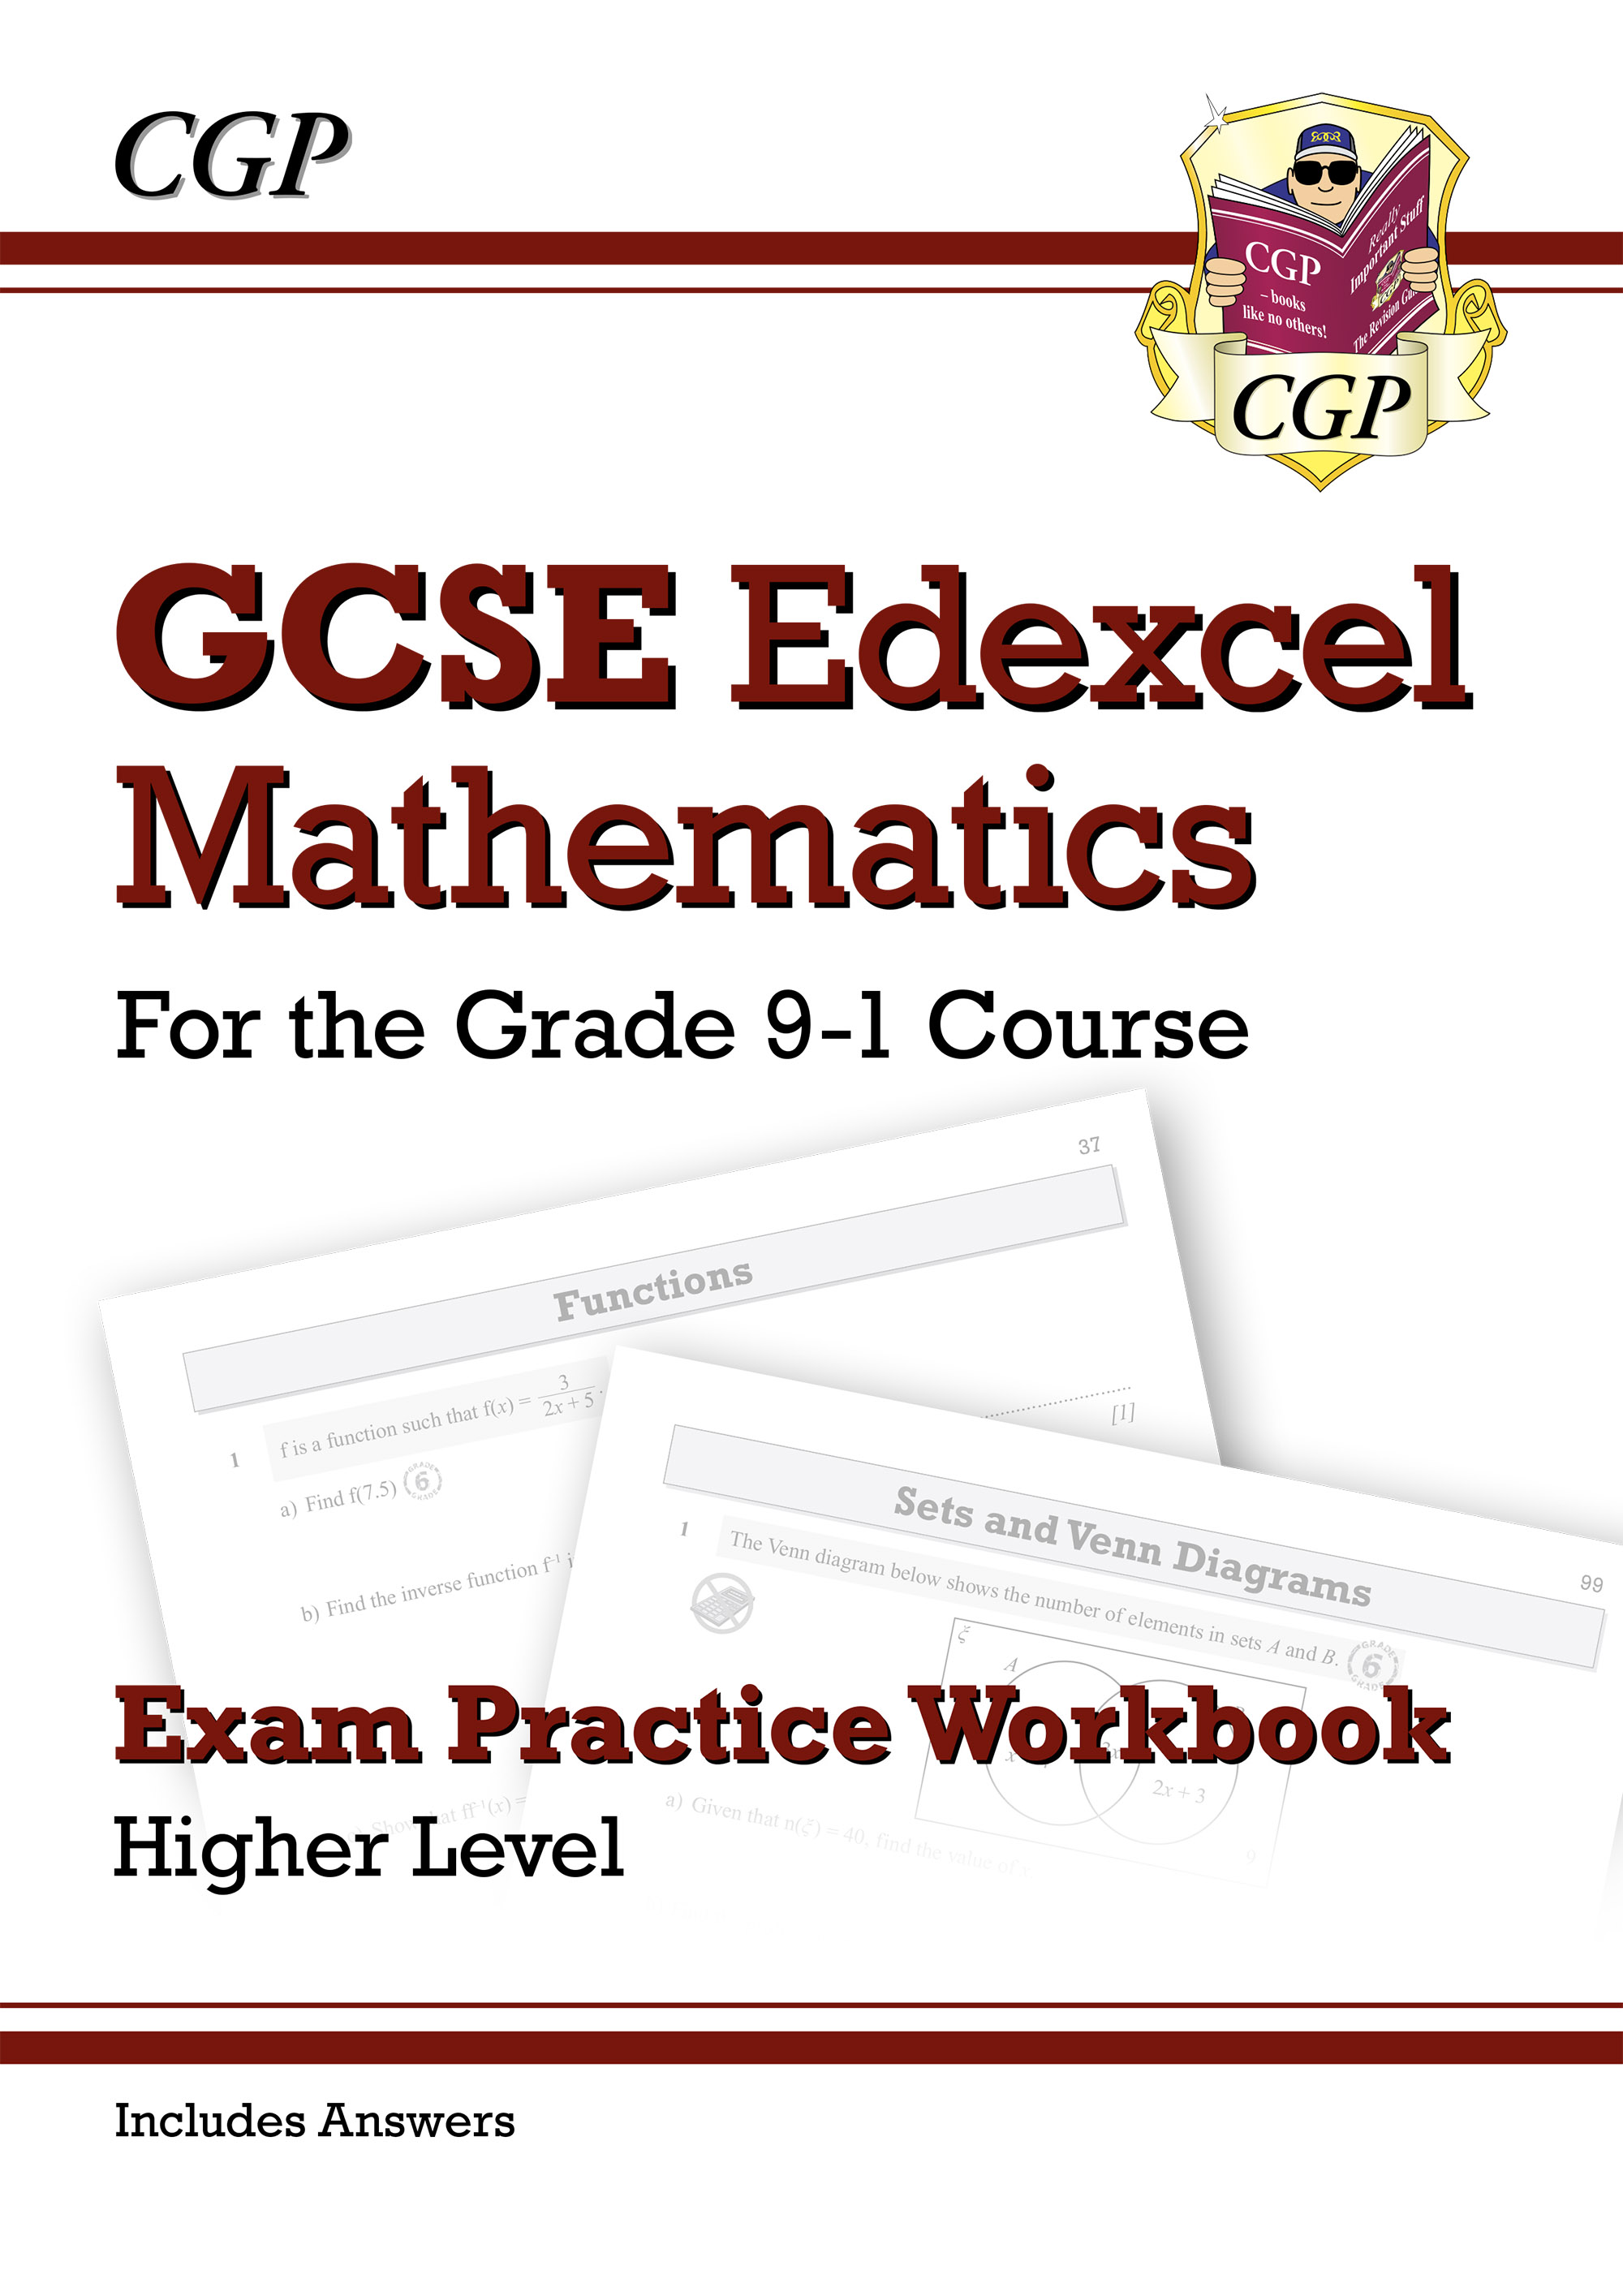 MXHQ42DK - GCSE Maths Edexcel Exam Practice Workbook: Higher - for the Grade 9-1 Course (includes An